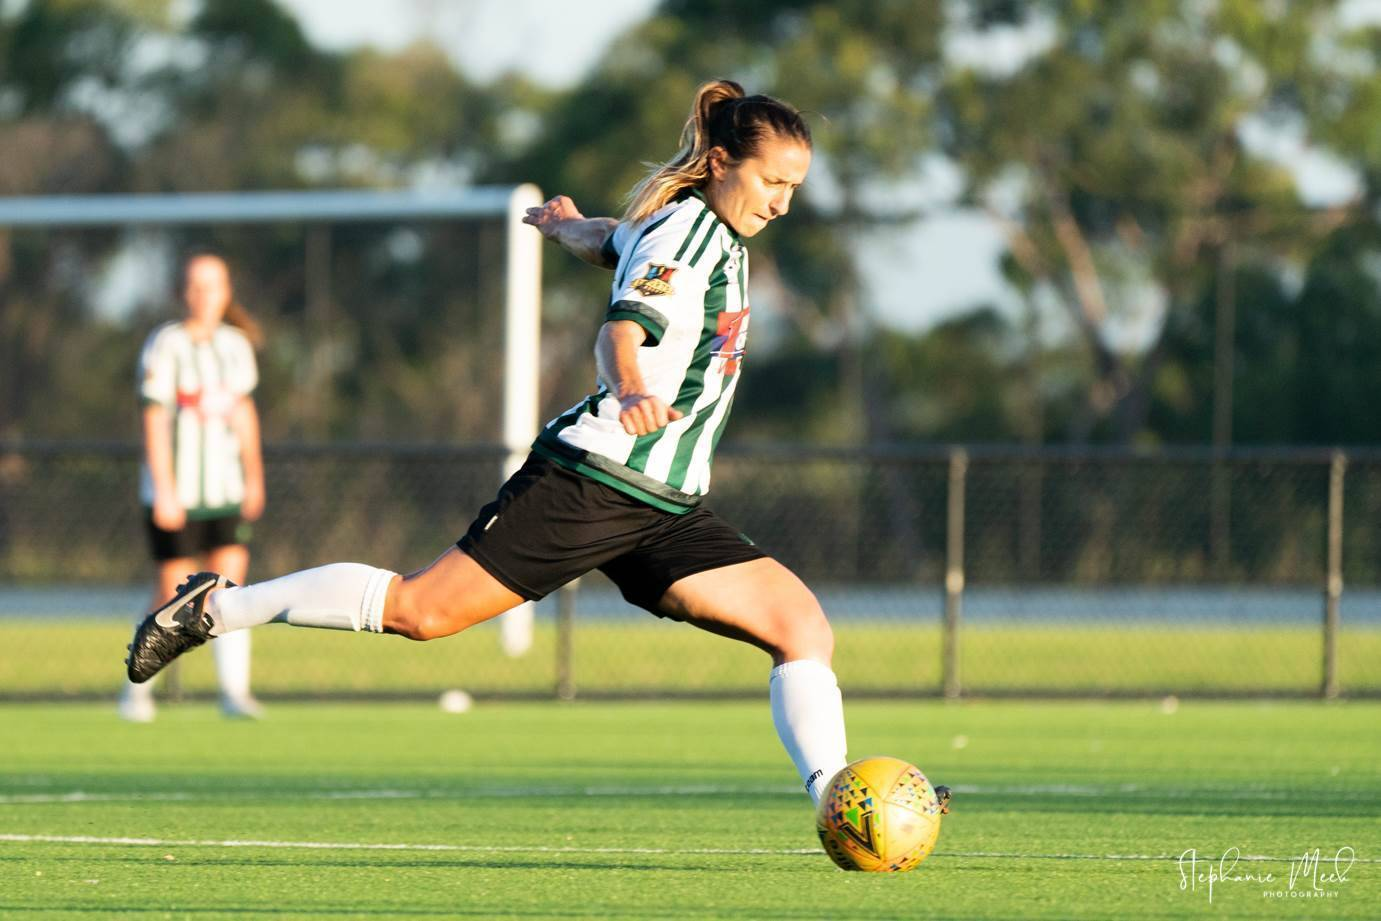 Pic Special: Northern Tigers FC v Manly United FC - The